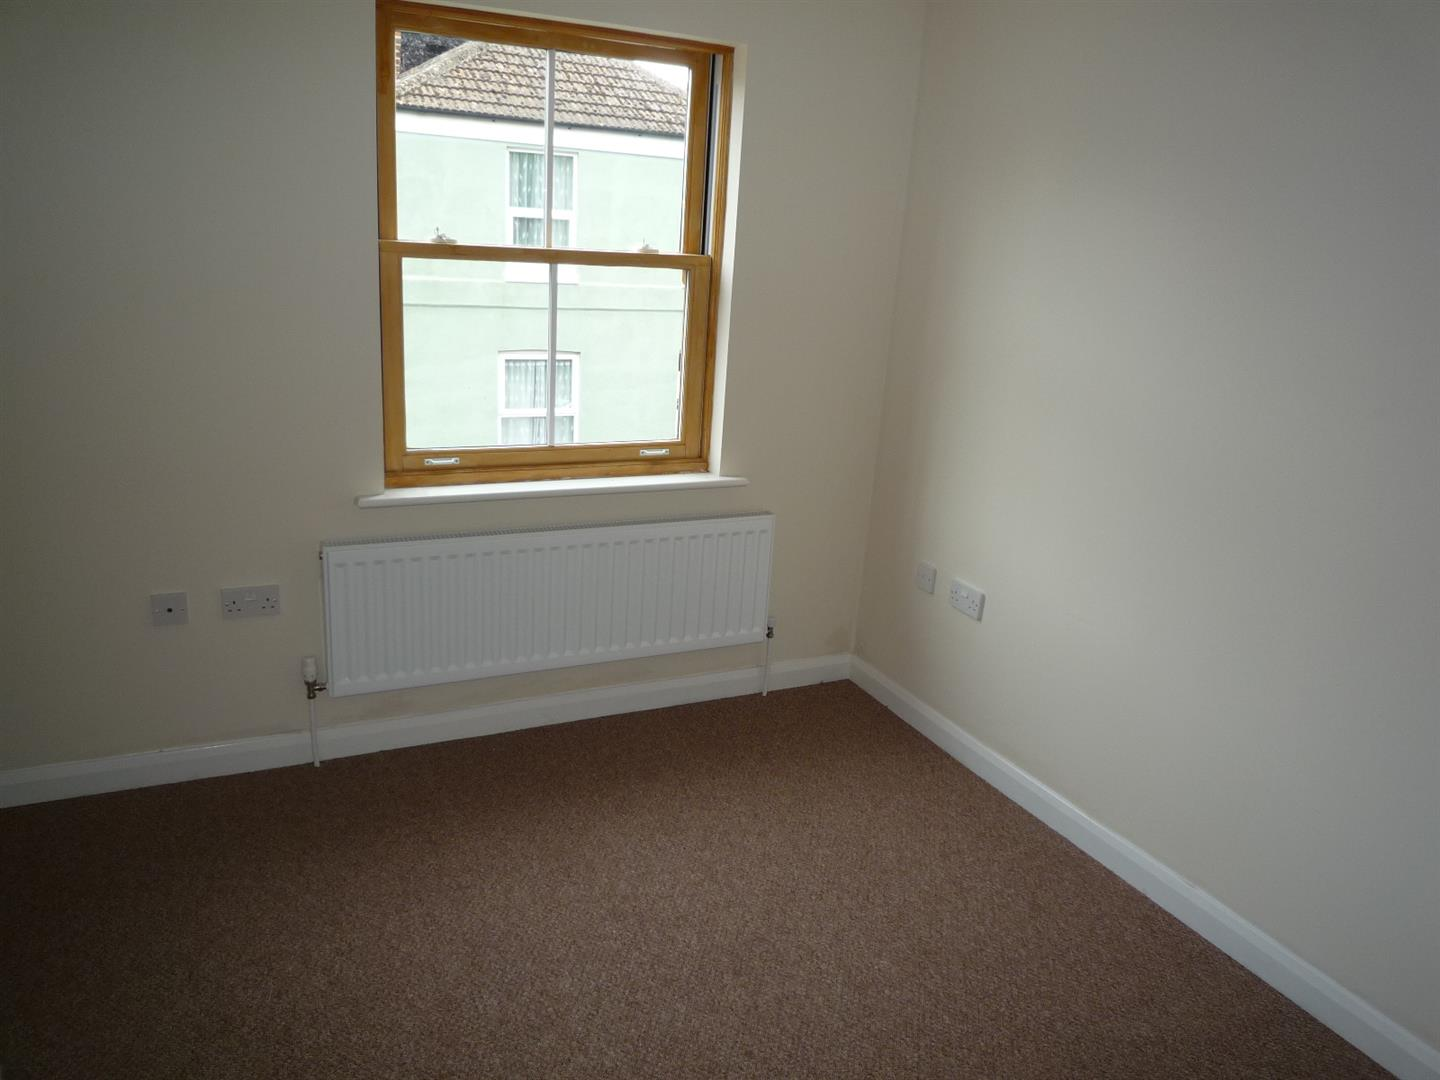 3 bed house to rent in Holbeach Spalding, PE12 7DR  - Property Image 5